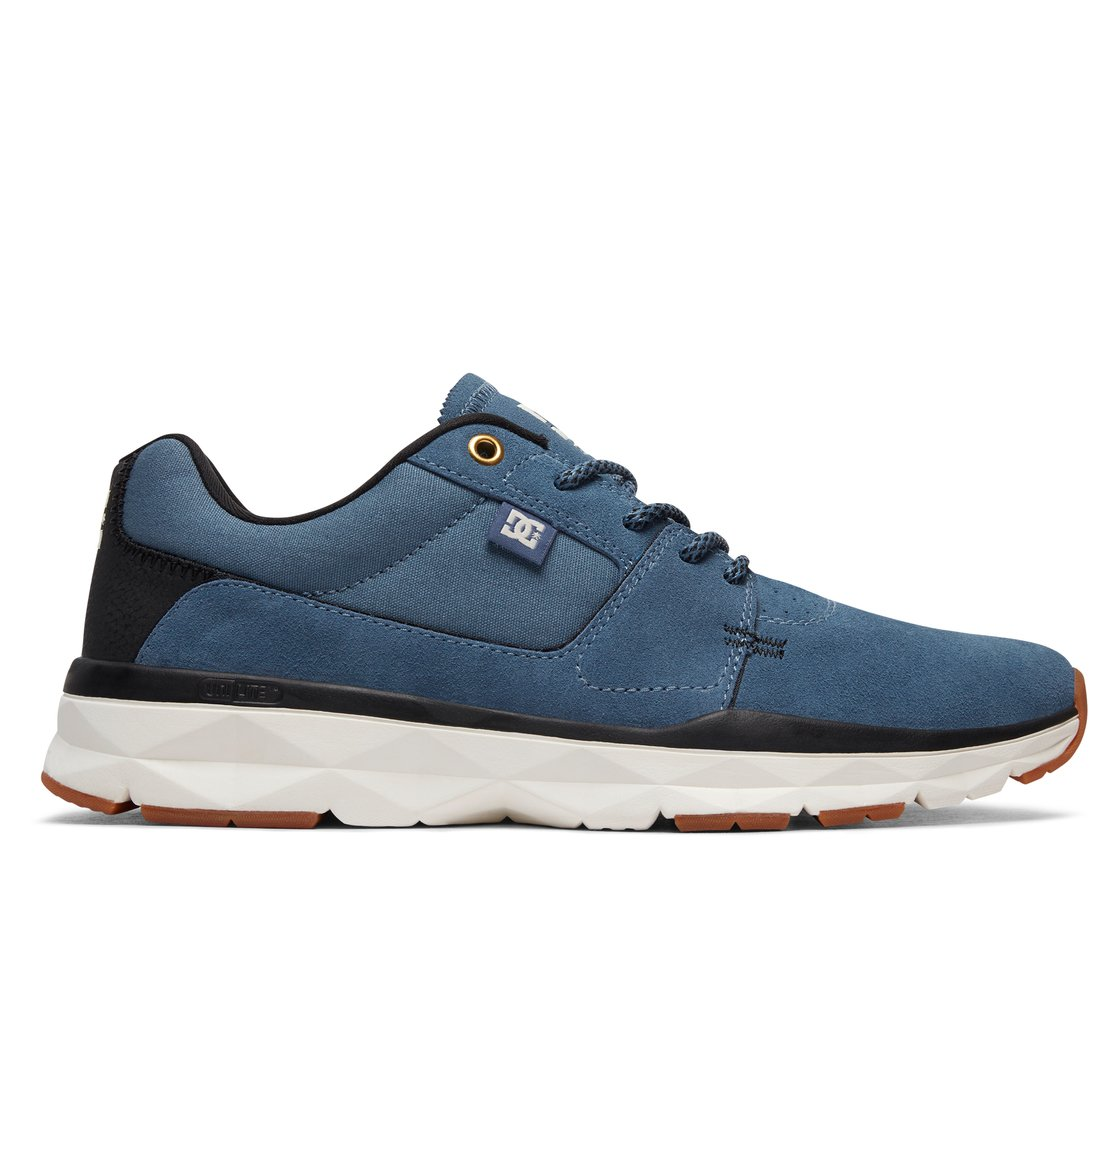 DC Shoes Player LE - Shoes - Zapatos - Hombre - EU 40 y7F5K3ZABl